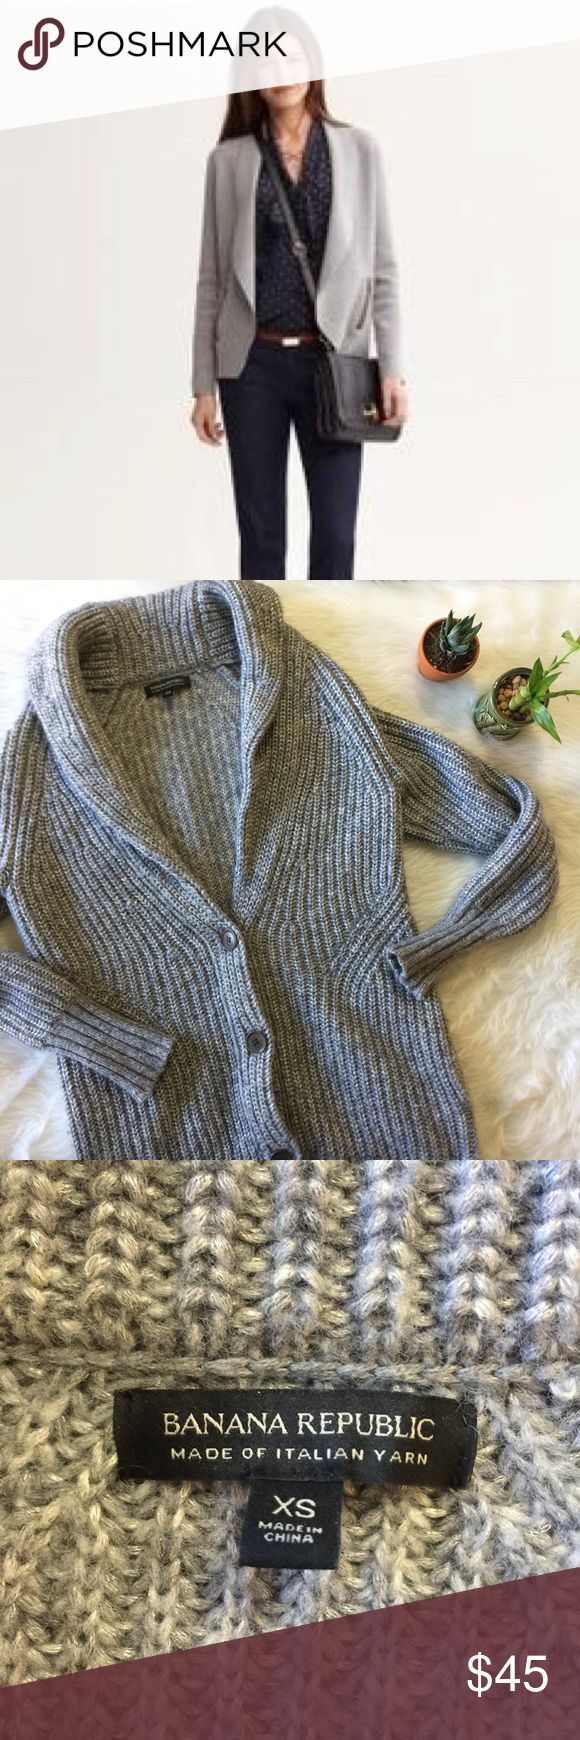 Banana Republic Silver Cardigan This cardigan is in excellent condition! Only worn once. Great for winter! No flaws like stains or holes. Smoke and pet free home. No trades. Offers are welcome! Banana Republic Sweaters Cardigans